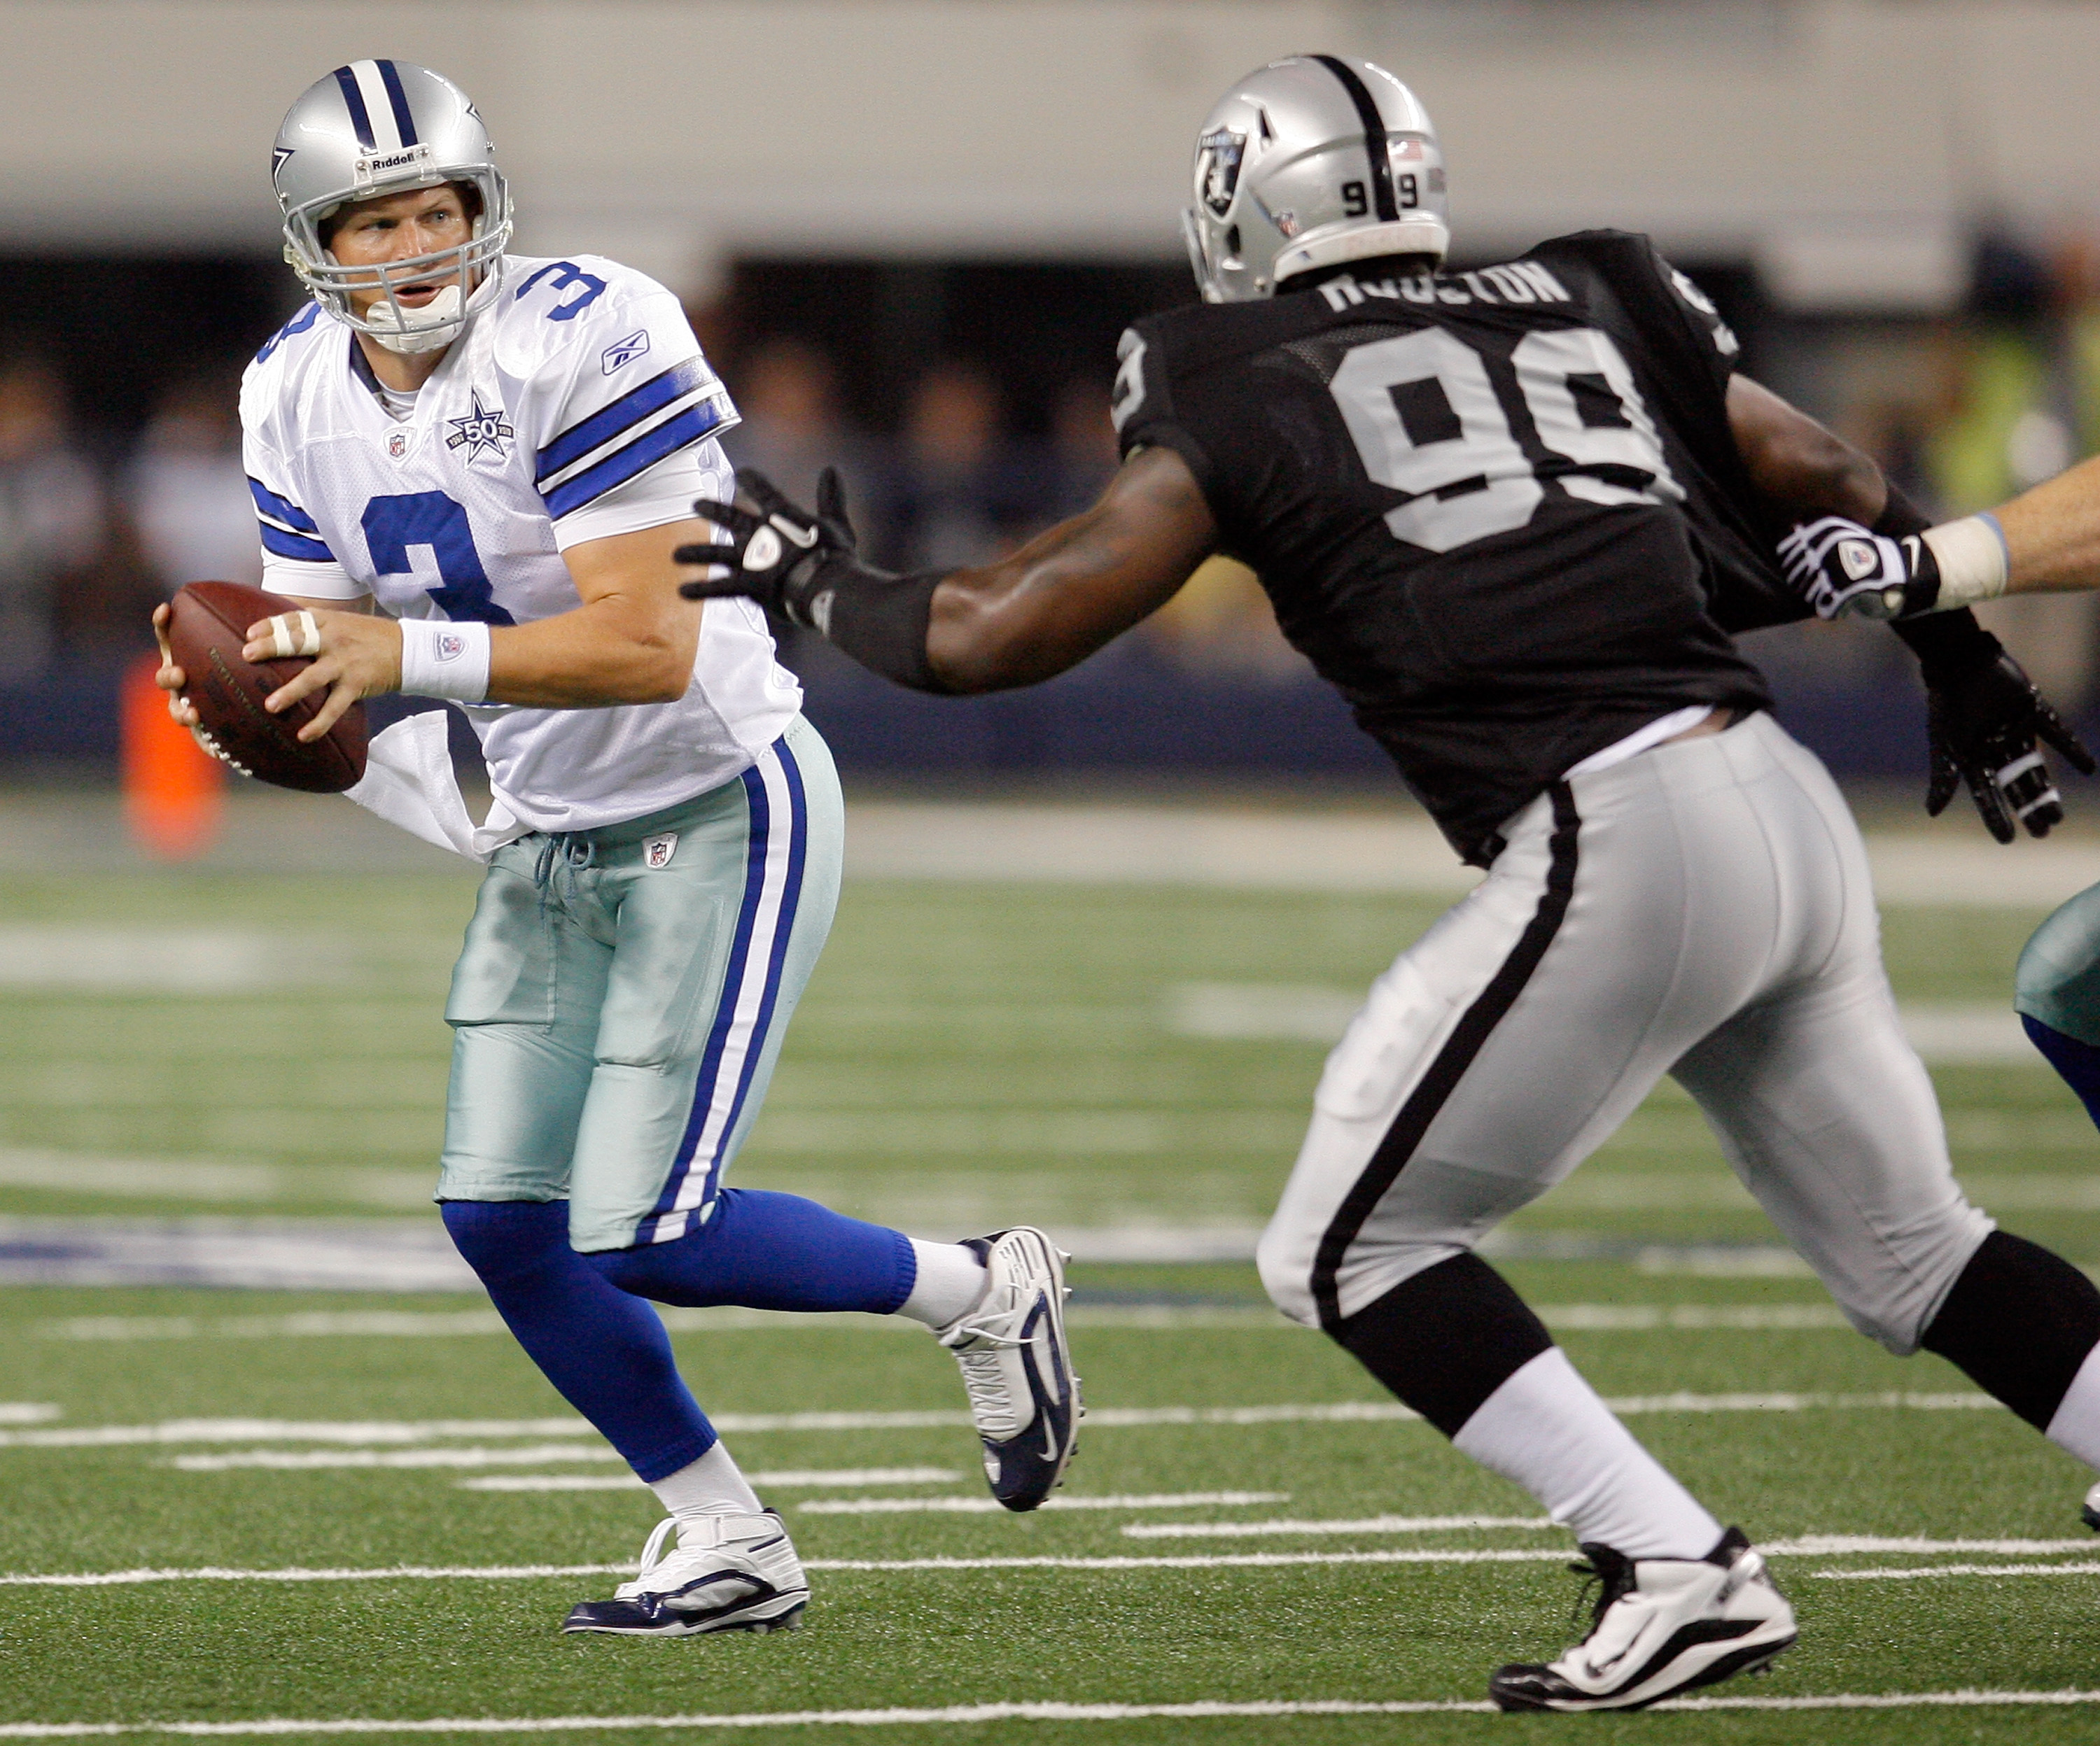 ARLINGTON, TX - AUGUST 12: Jon Kitna #3 of the Dallas Cowboys looks to pass against Lamarr Houston #99 of the Oakland Raiders during the preseason game at the Dallas Cowboys Stadium on August 12, 2010 in Arlington, Texas. (Photo by Tom Pennington/Getty Im